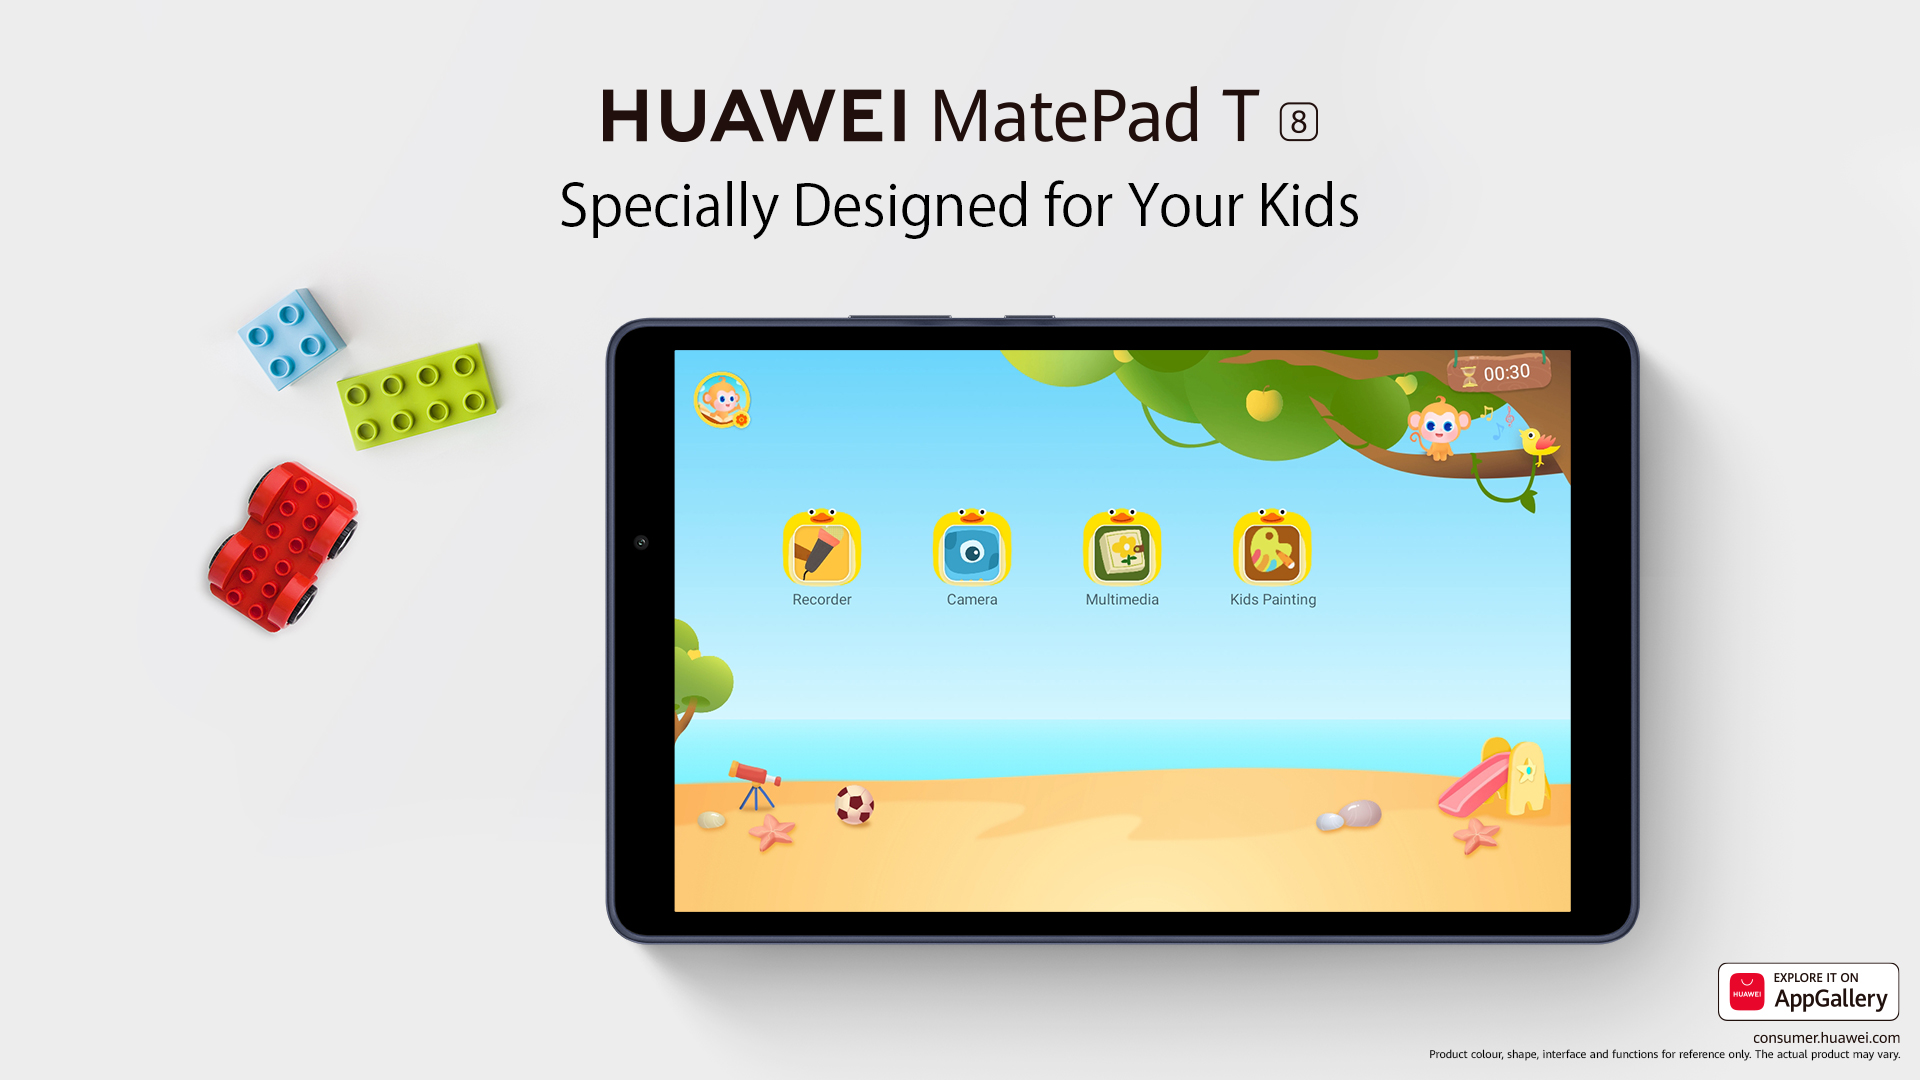 Enjoy Endless Handheld Infotainment with the all new HUAWEI MatePad T 8